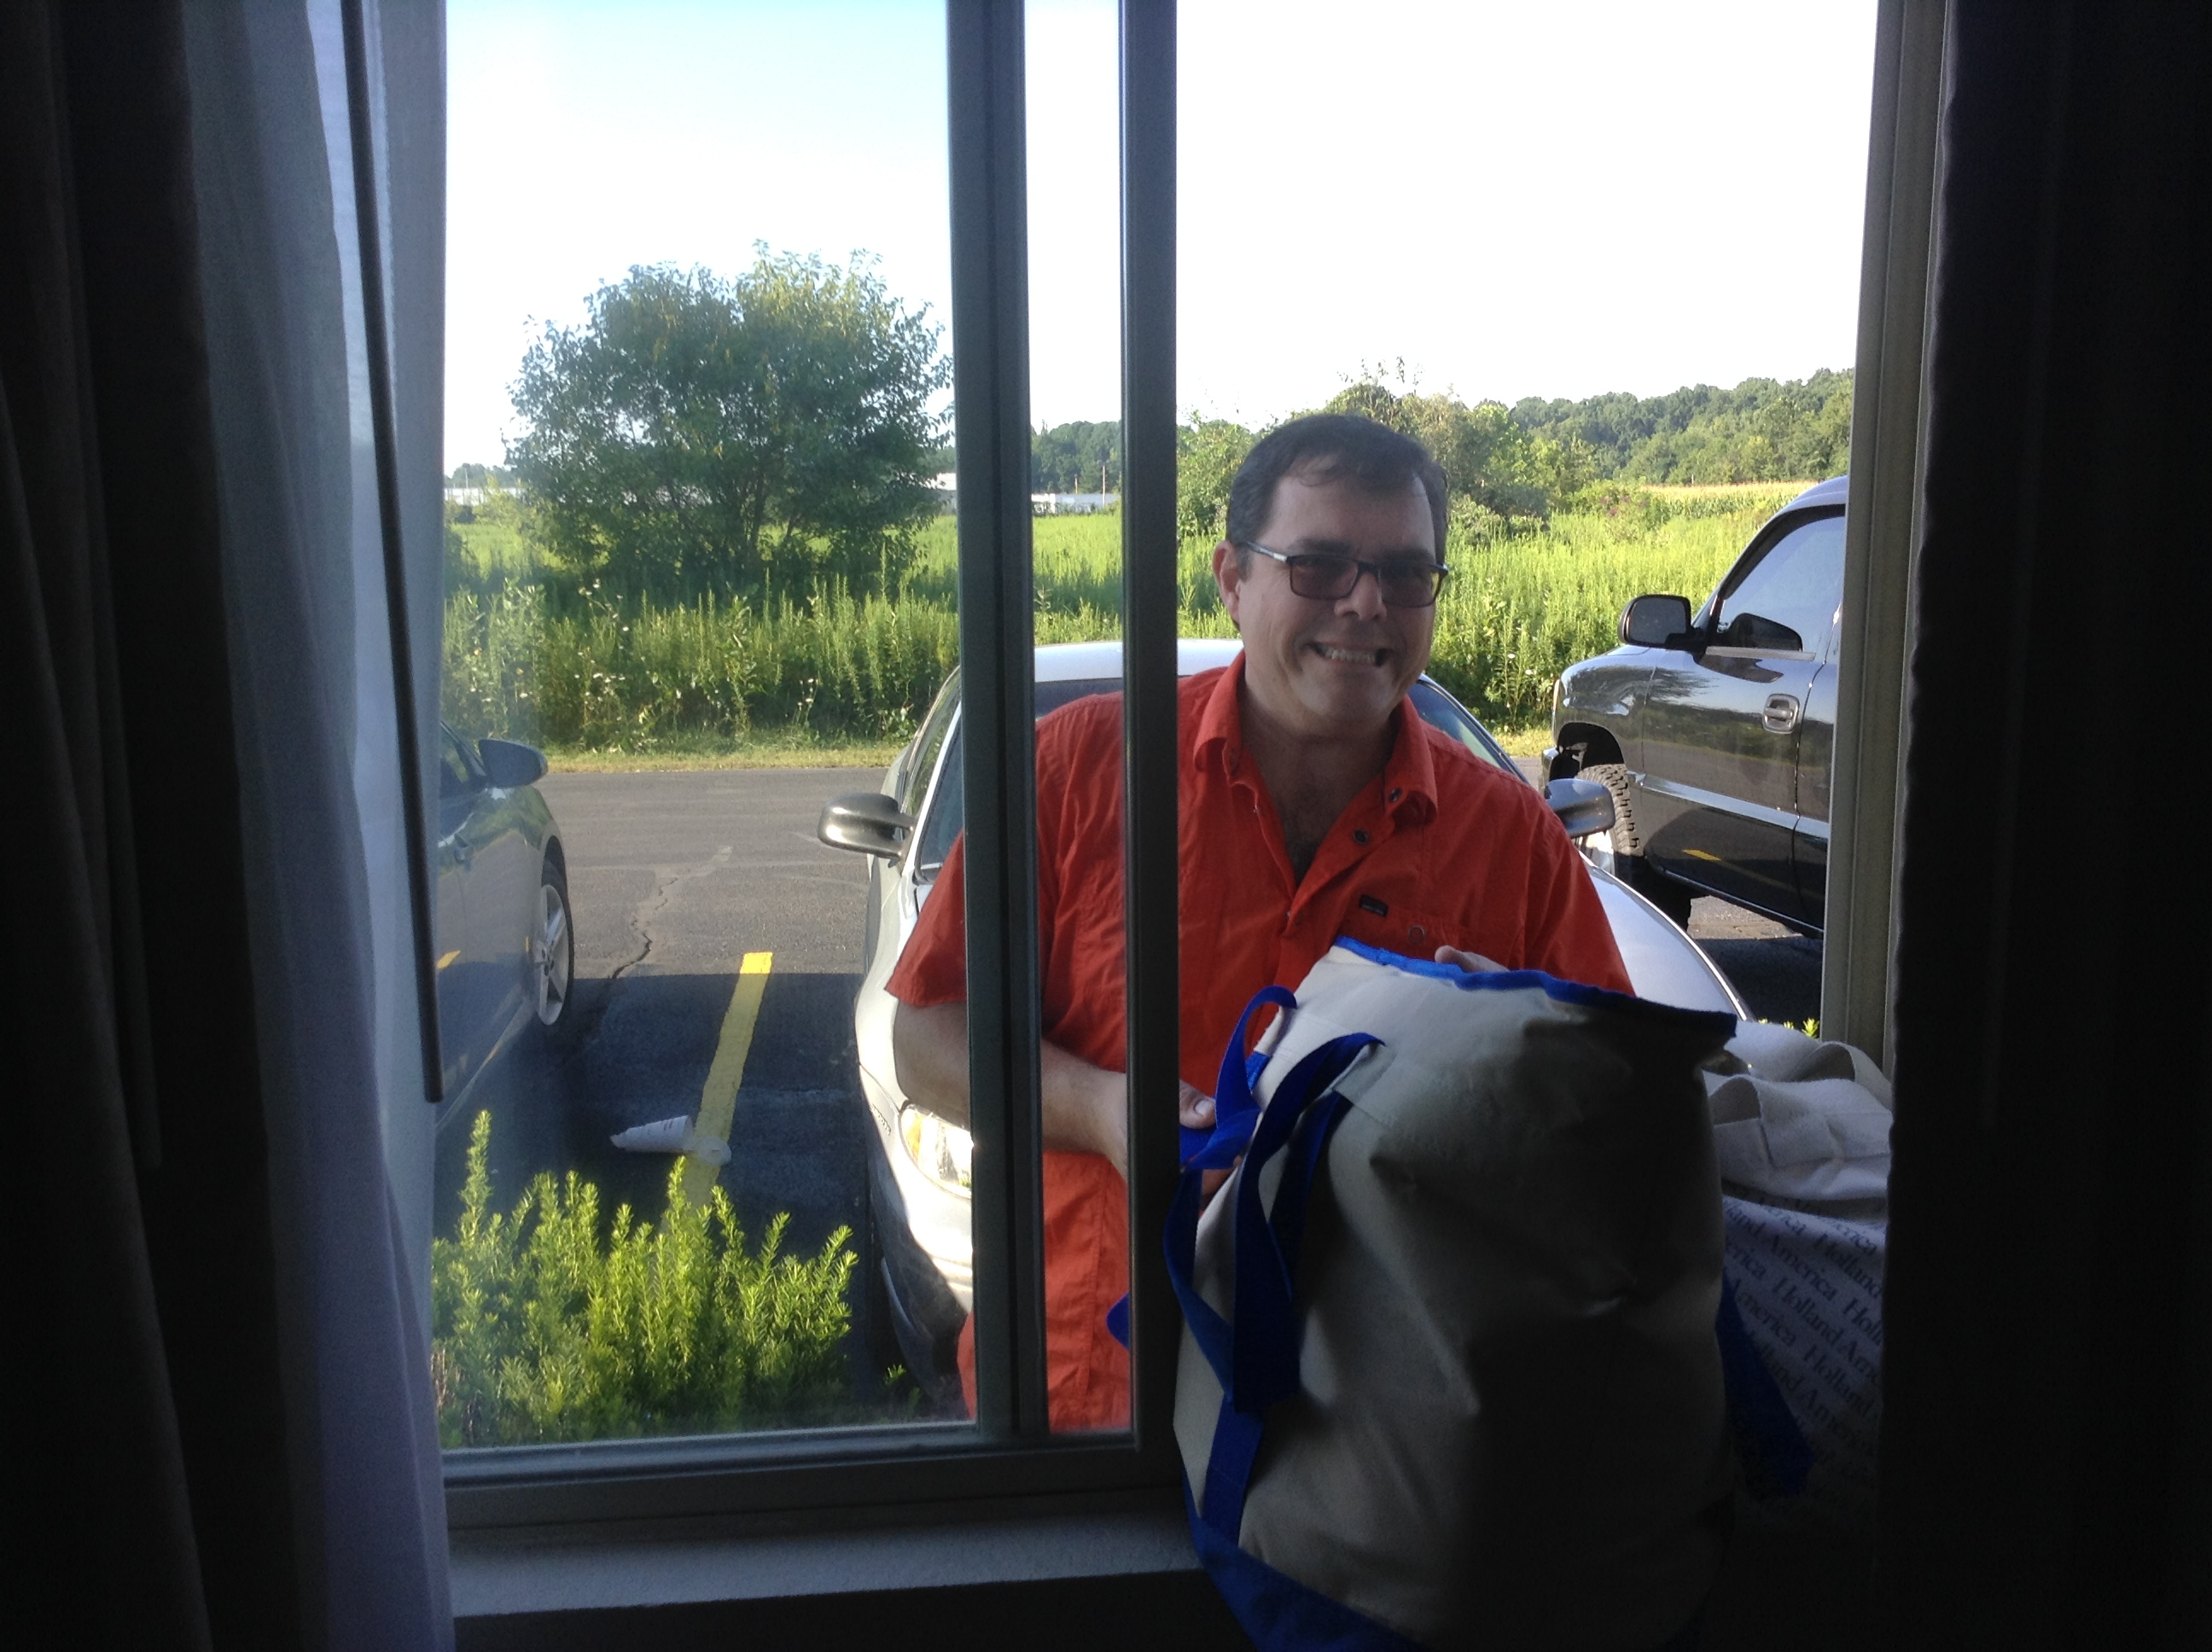 Packing the car from our hotel room window!  What a great idea!